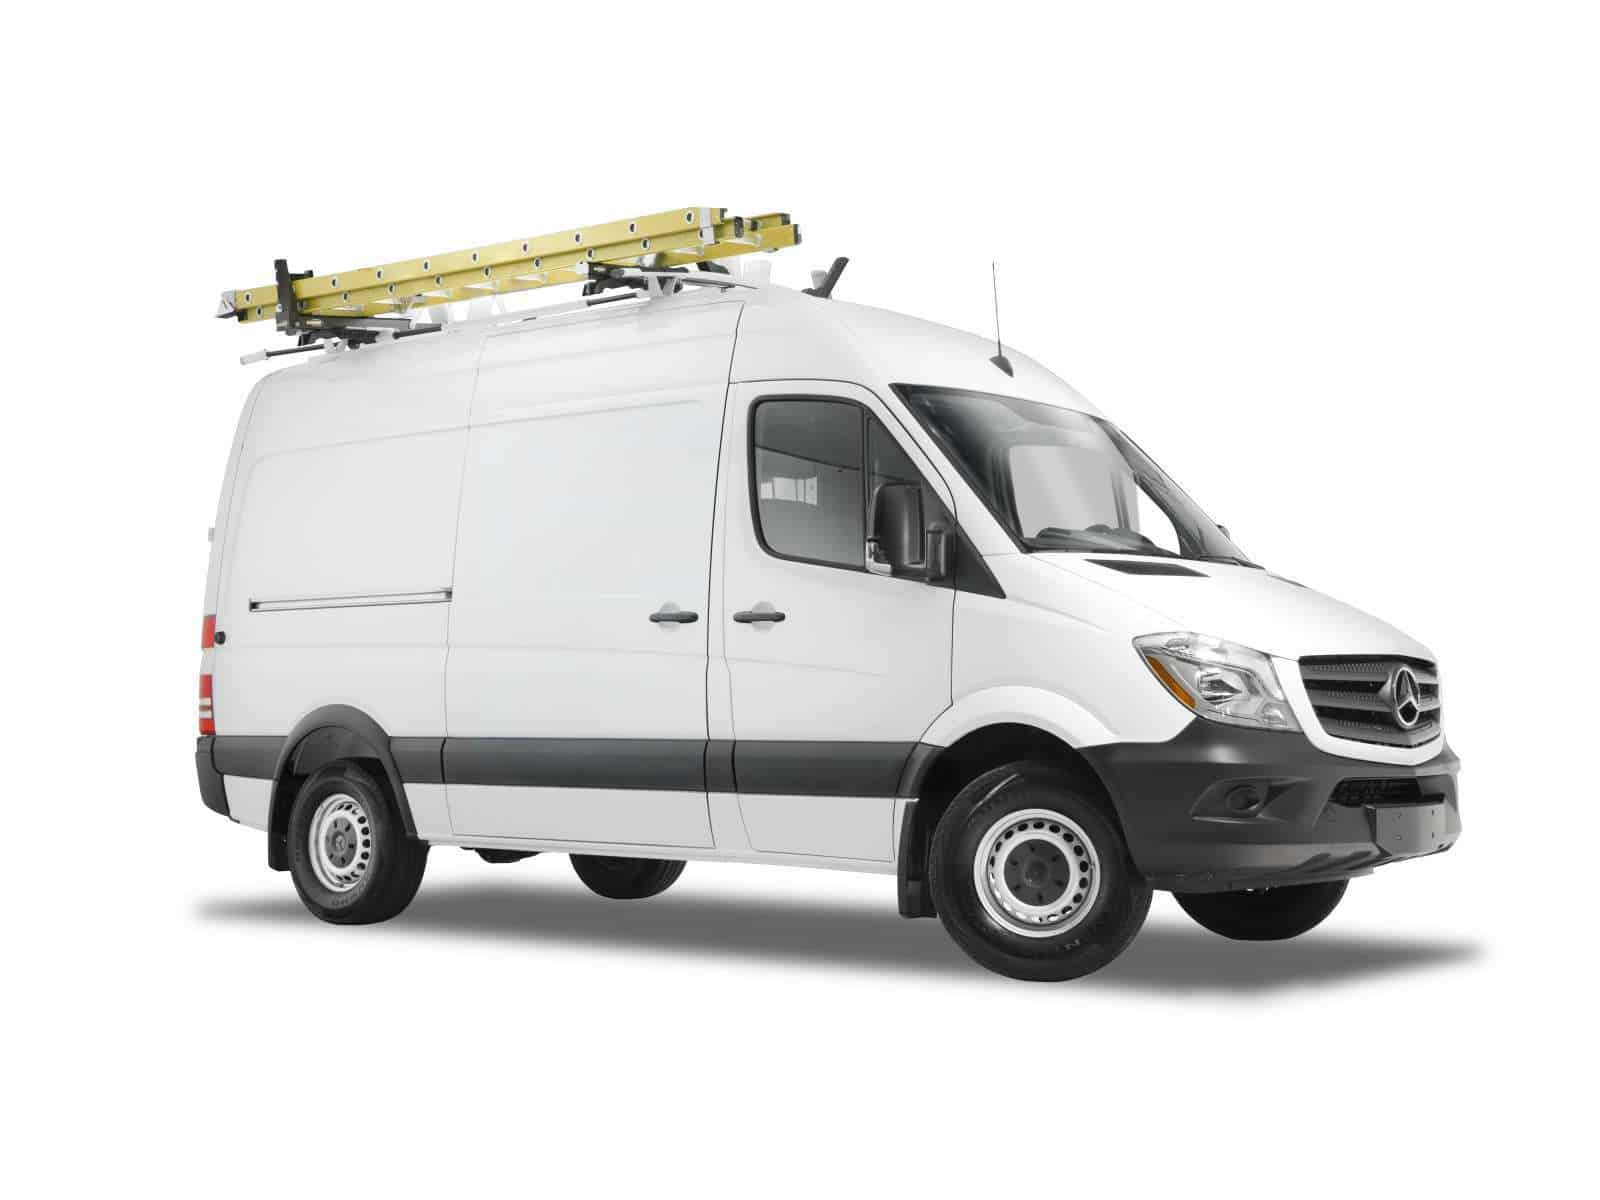 Sprinter Ladder Rack (Max Rack), Front 3/4 View